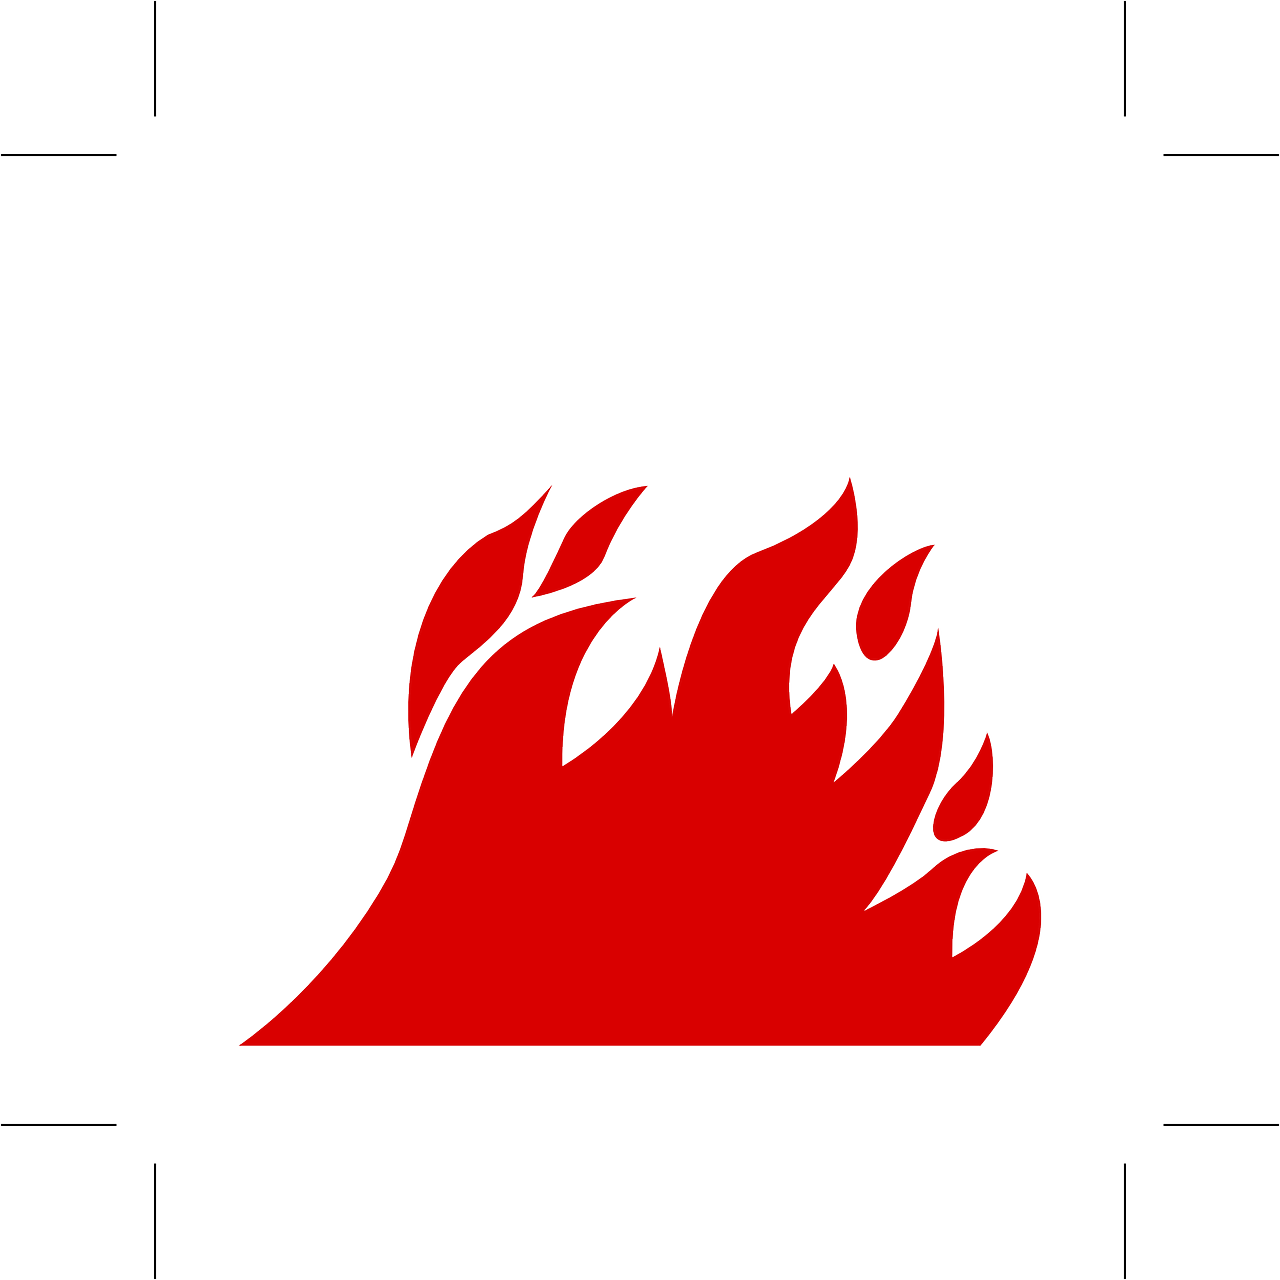 How to draw flames fire - free stencils 8